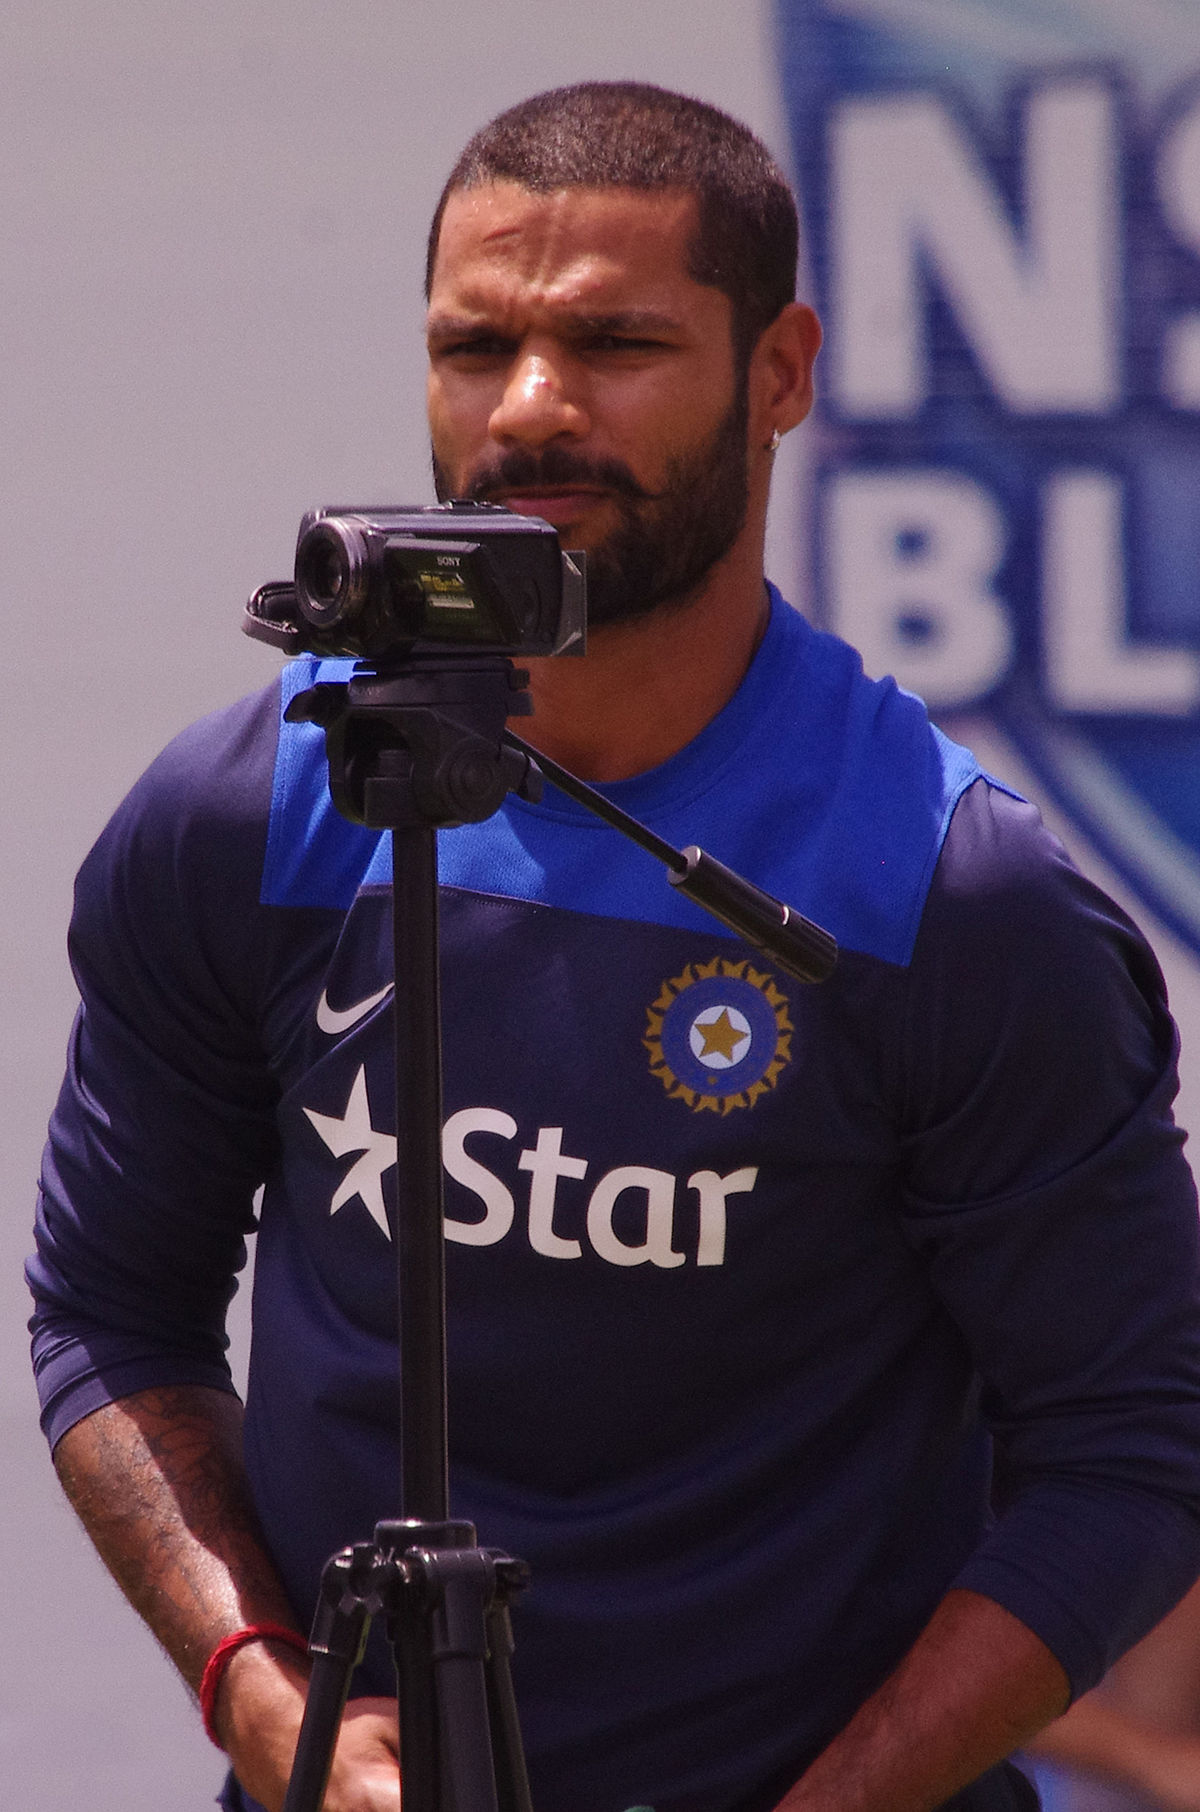 shikhar dhawan - photo #10